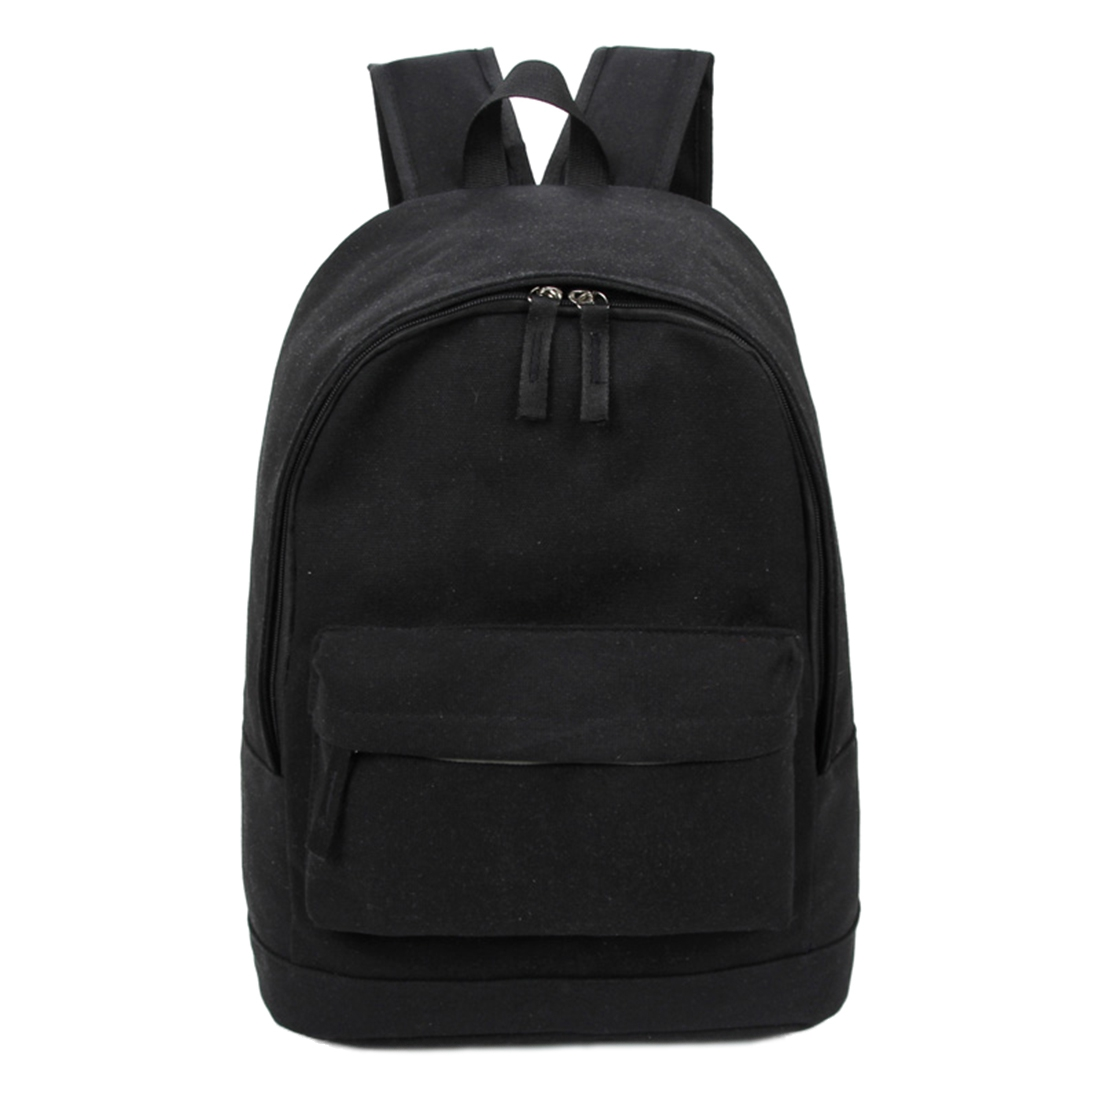 New Korea Style Fashion Backpack for Men and Women Preppy Style Soft Back Pack Unisex School Bags Big Capacity Canvas Bag